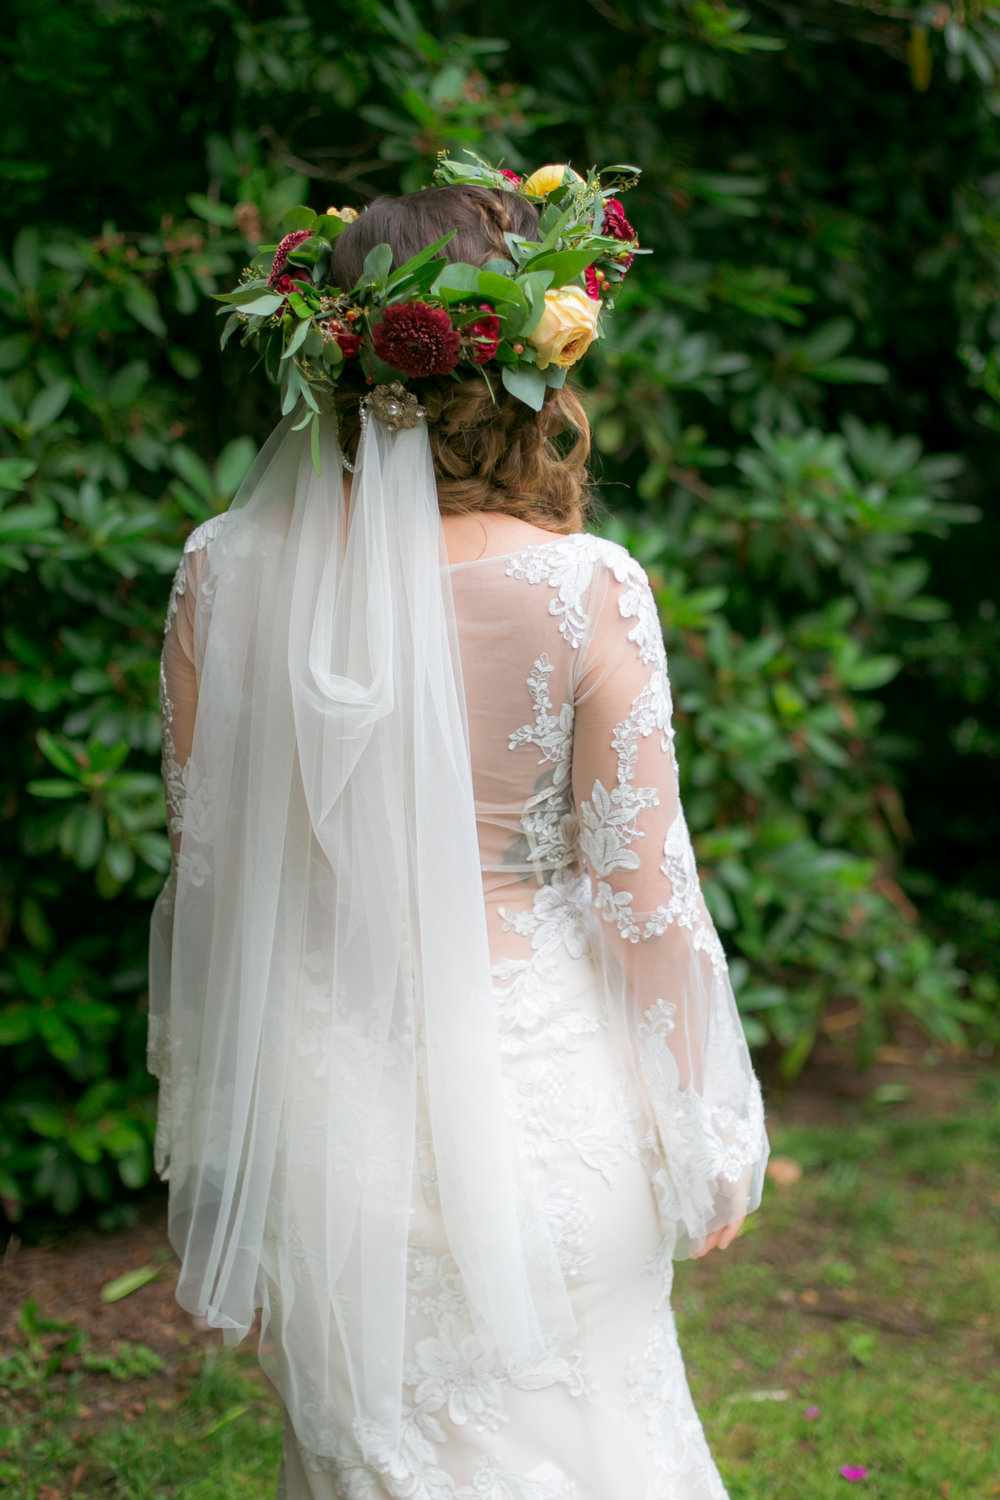 Flower Crown Wedding Veil - Colchester, Connecticut Wedding Photographer